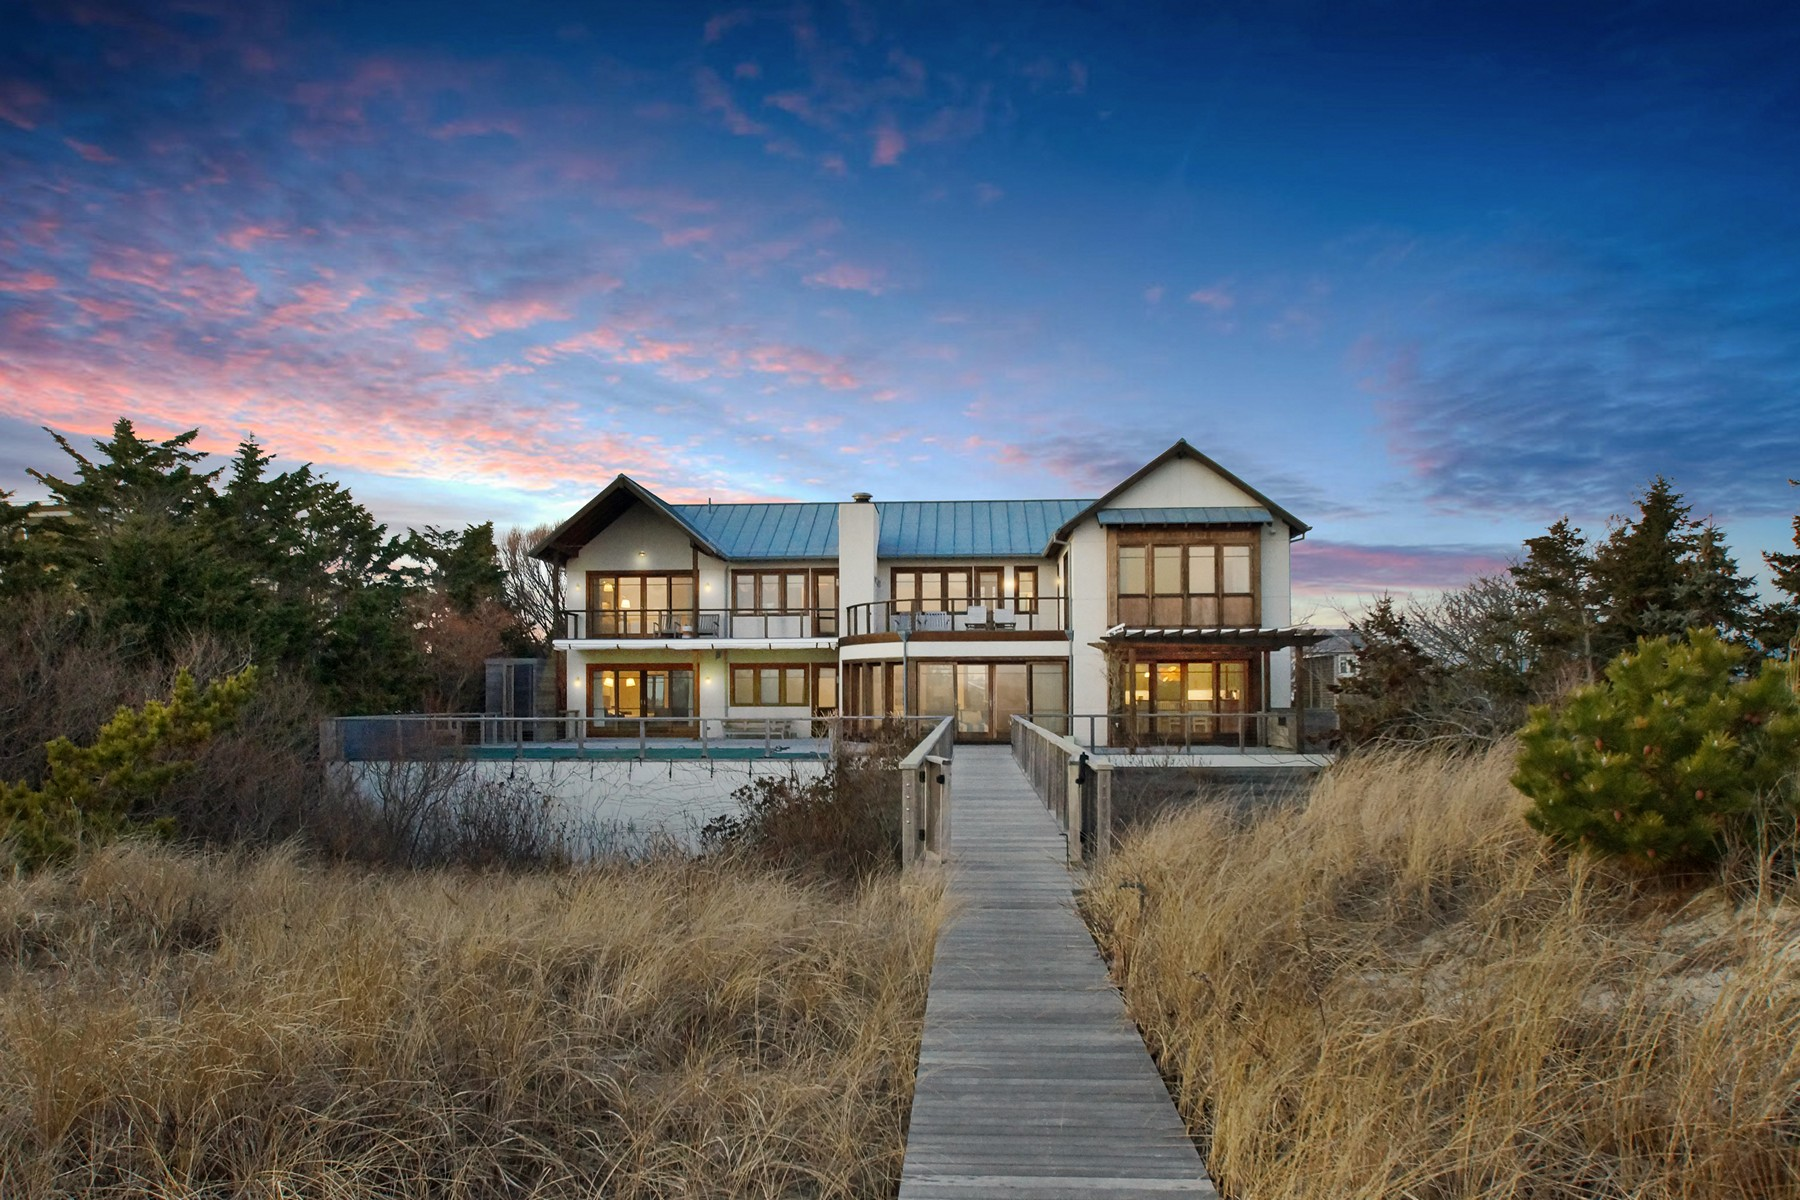 Single Family Homes for Active at Westhampton Bch 127 Dune Rd Westhampton Beach, New York 11978 United States